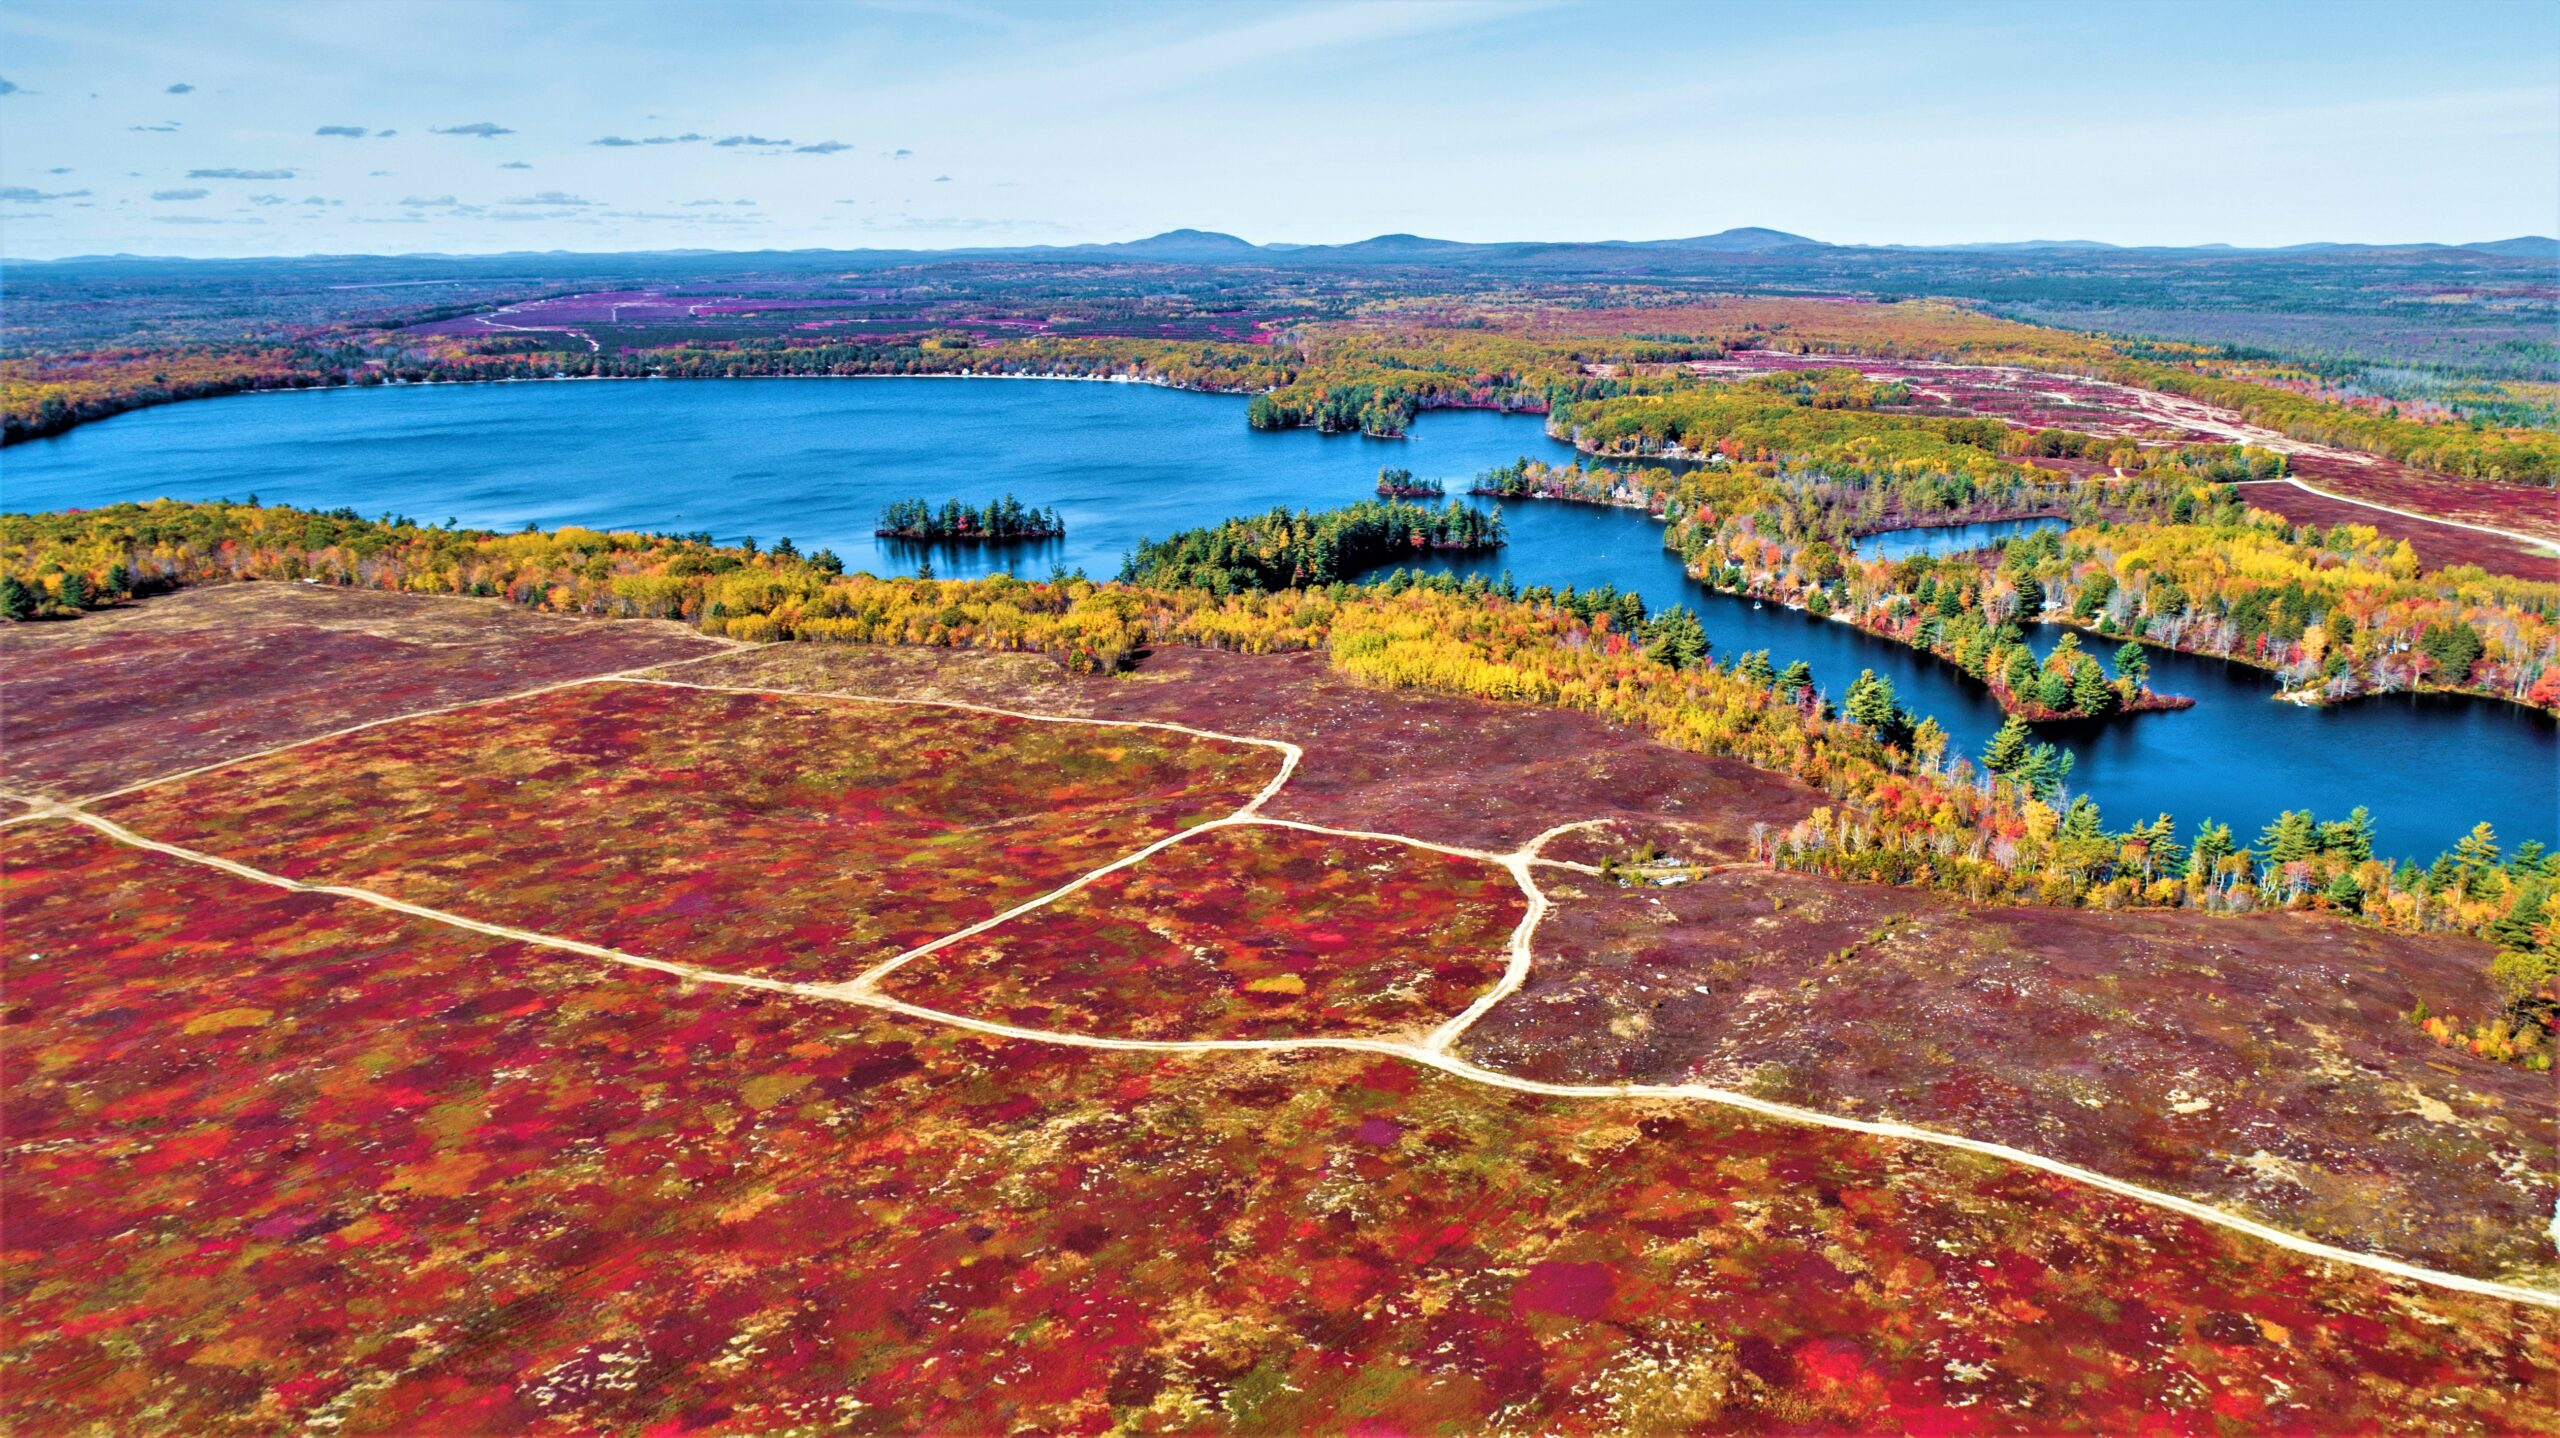 Schoodic-Lake-Mid-October-Blueberry-Barrens-Columbia-Falls-Maine-390-note-cards-1-1